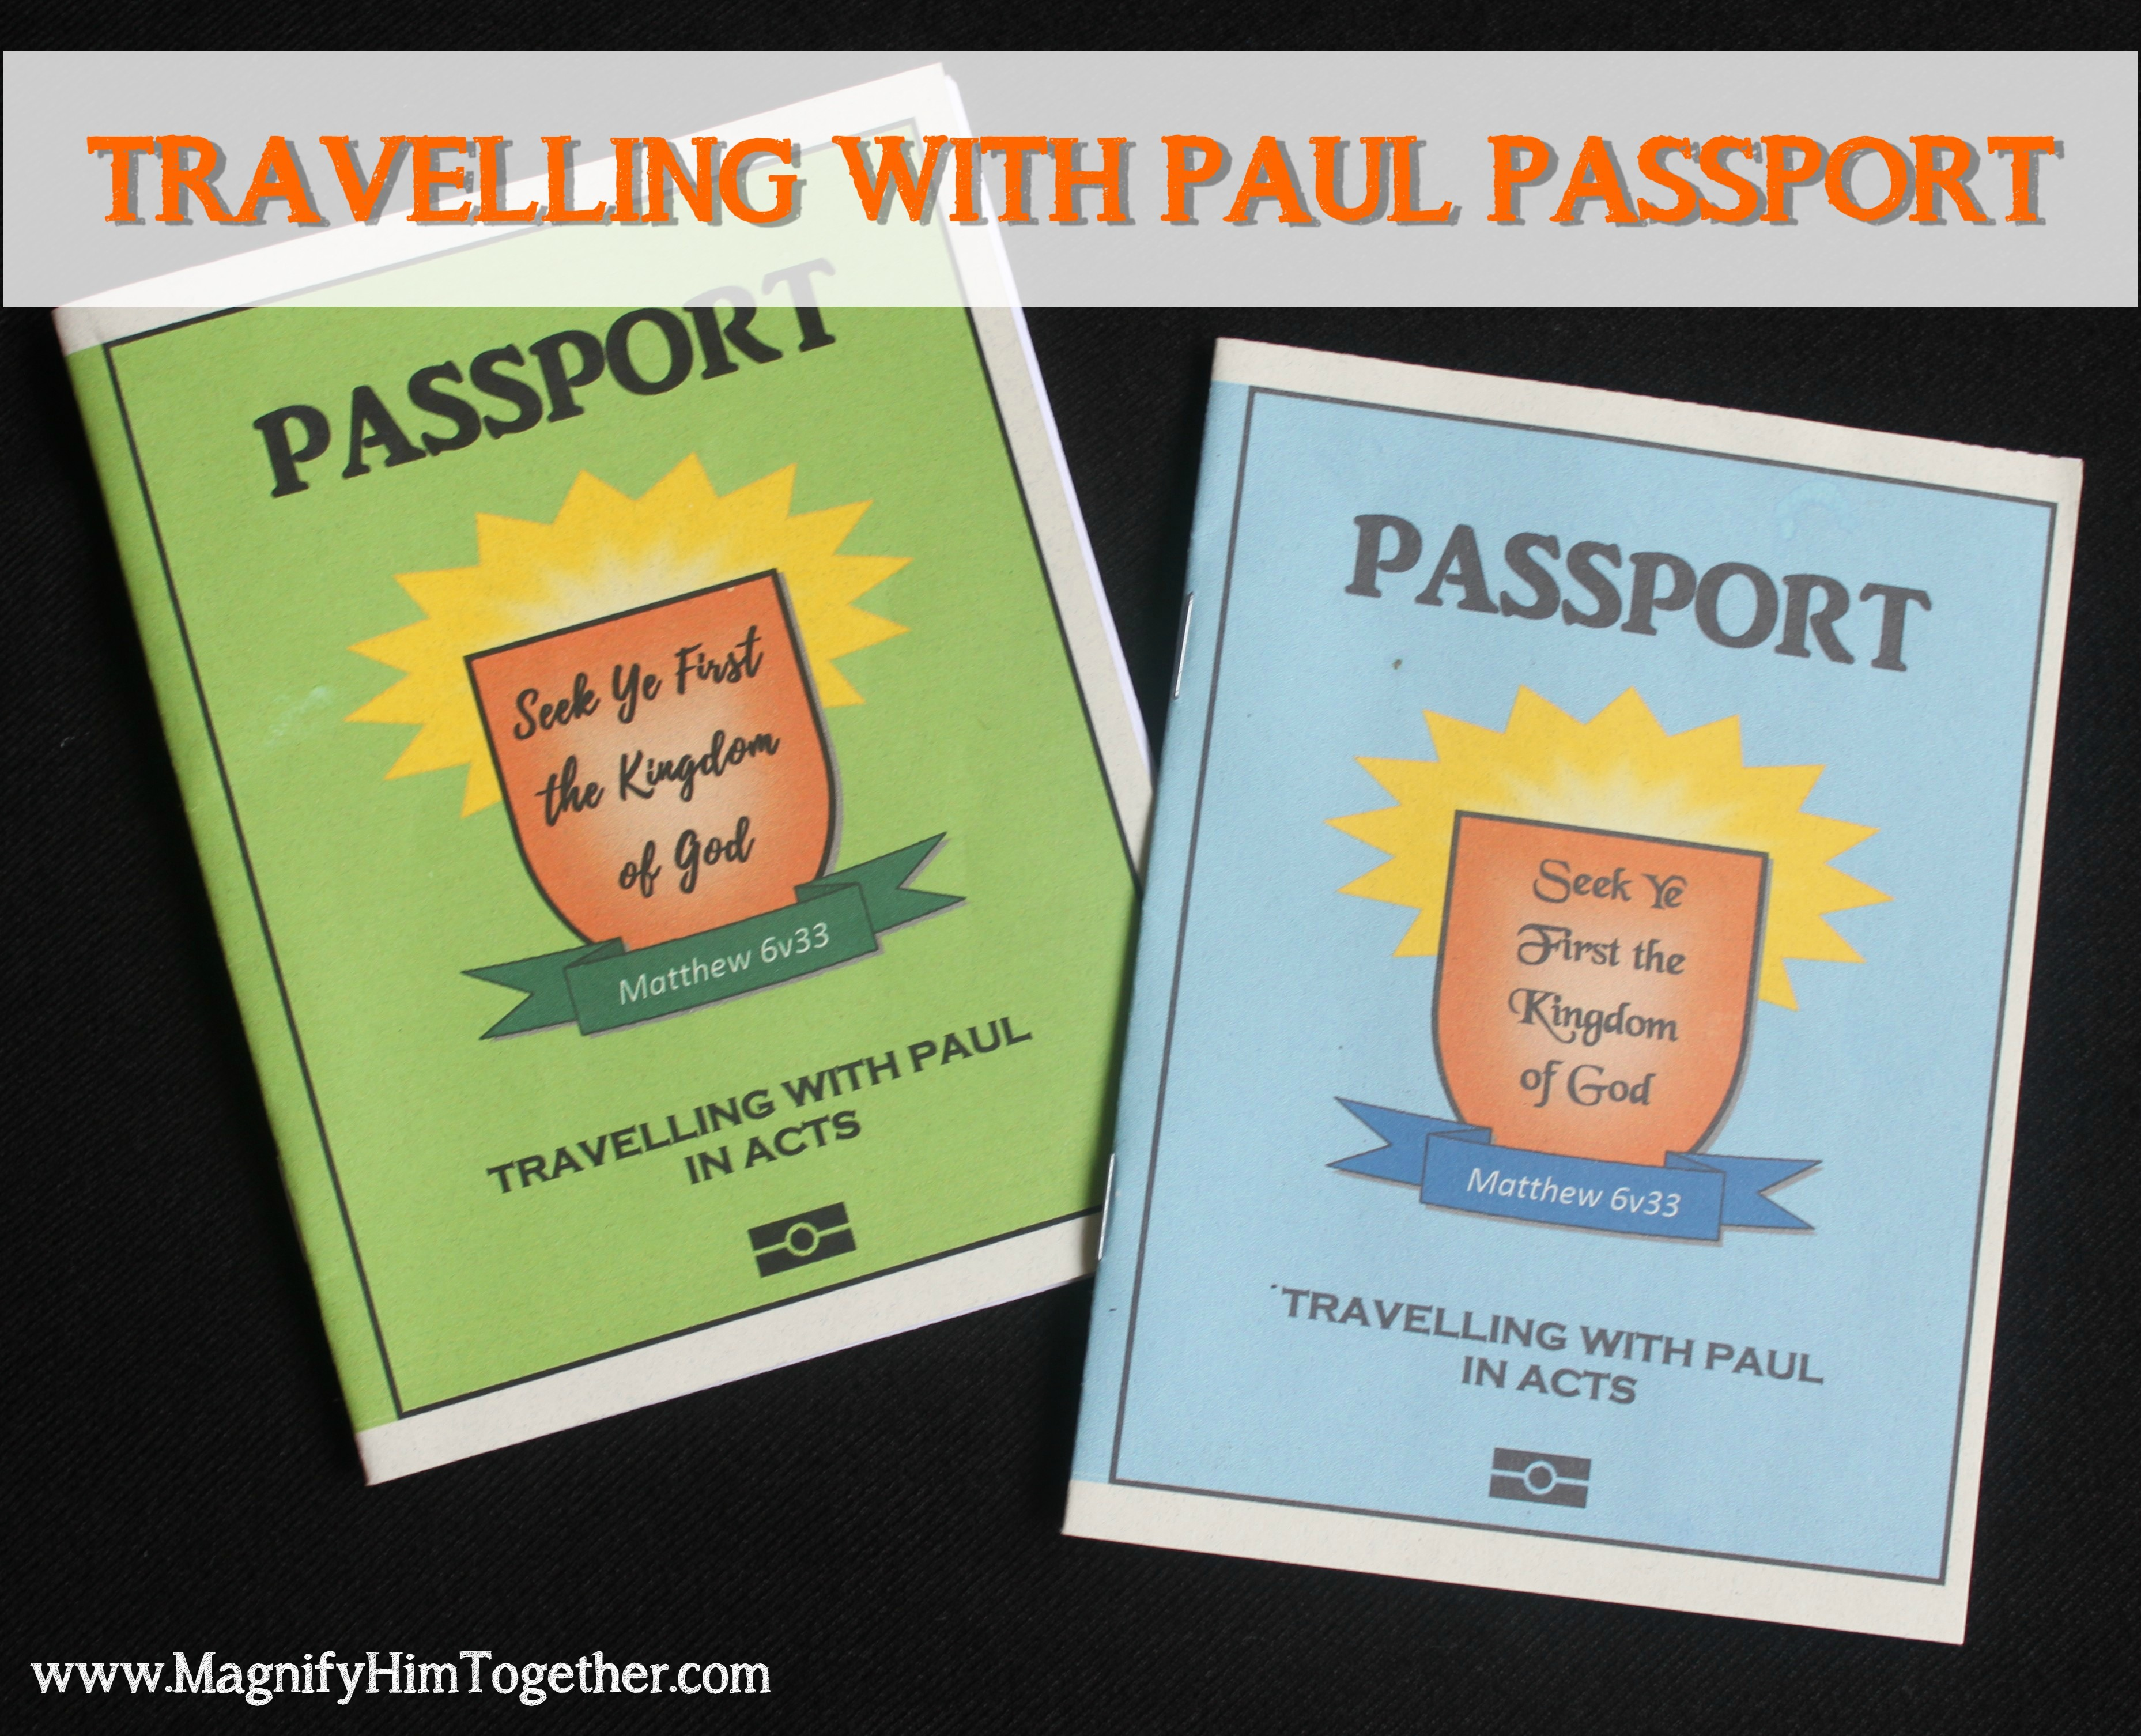 Travelling With Paul Passport Magnify Him Together